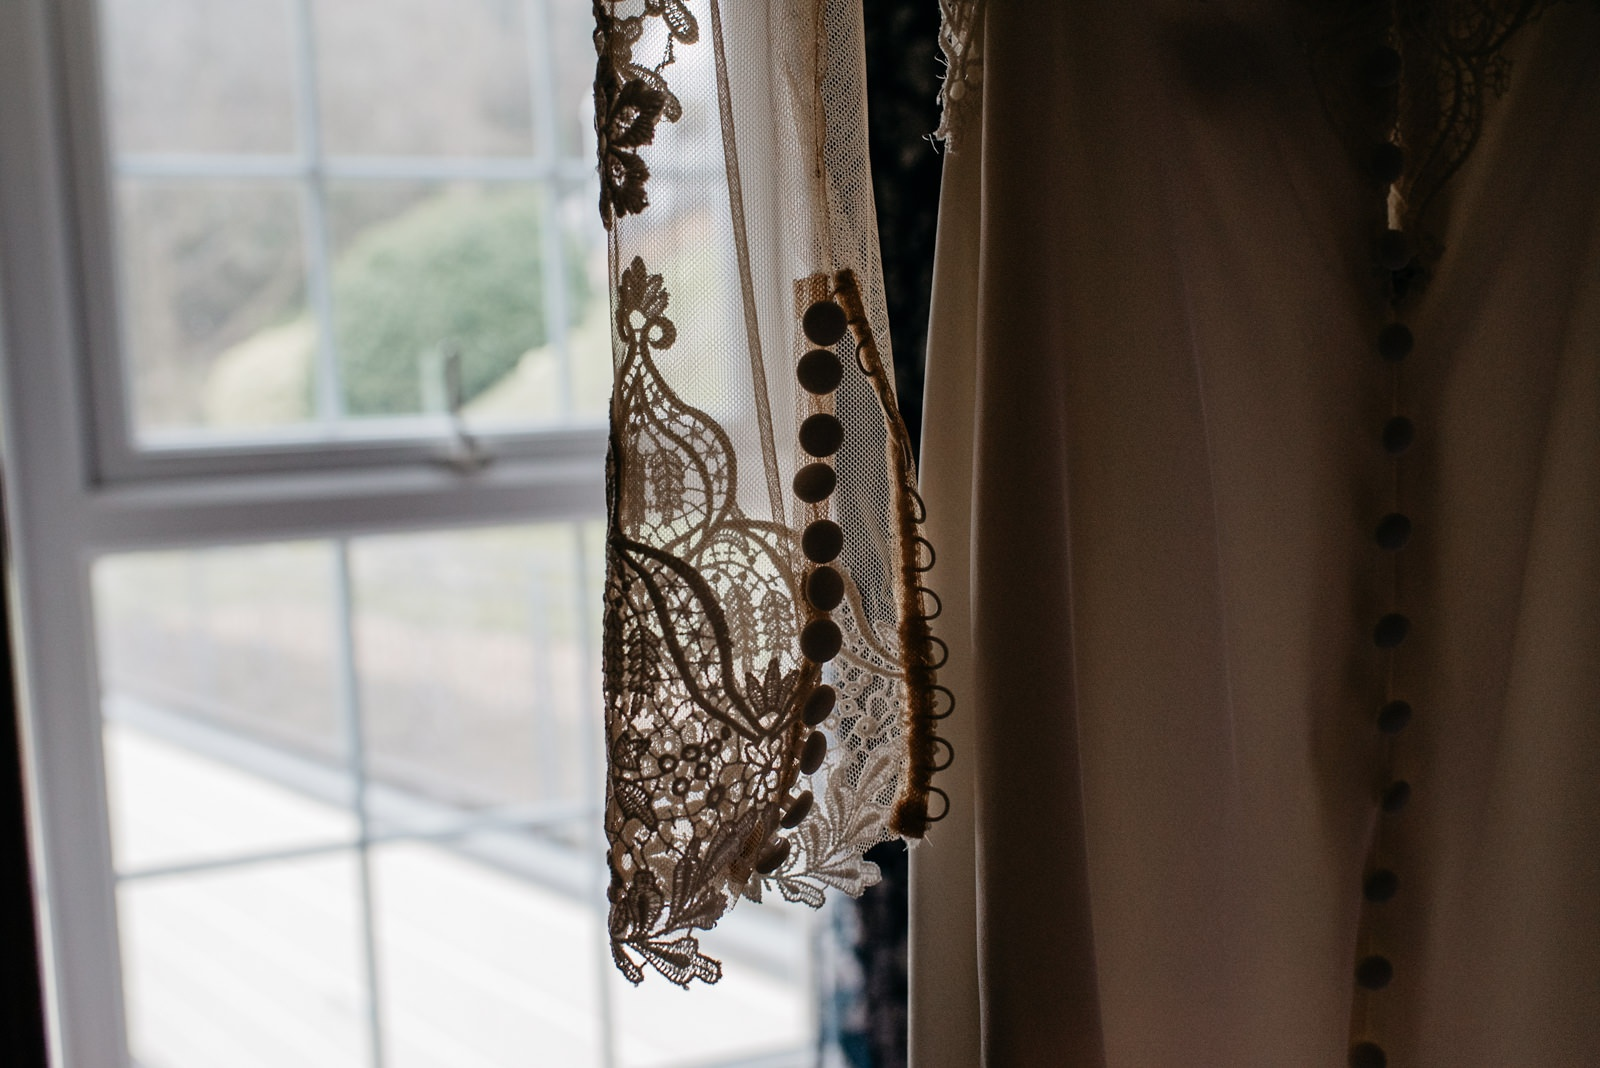 fine art photograph of brides lace wedding dress hanging in New House Hotel in Lisvane